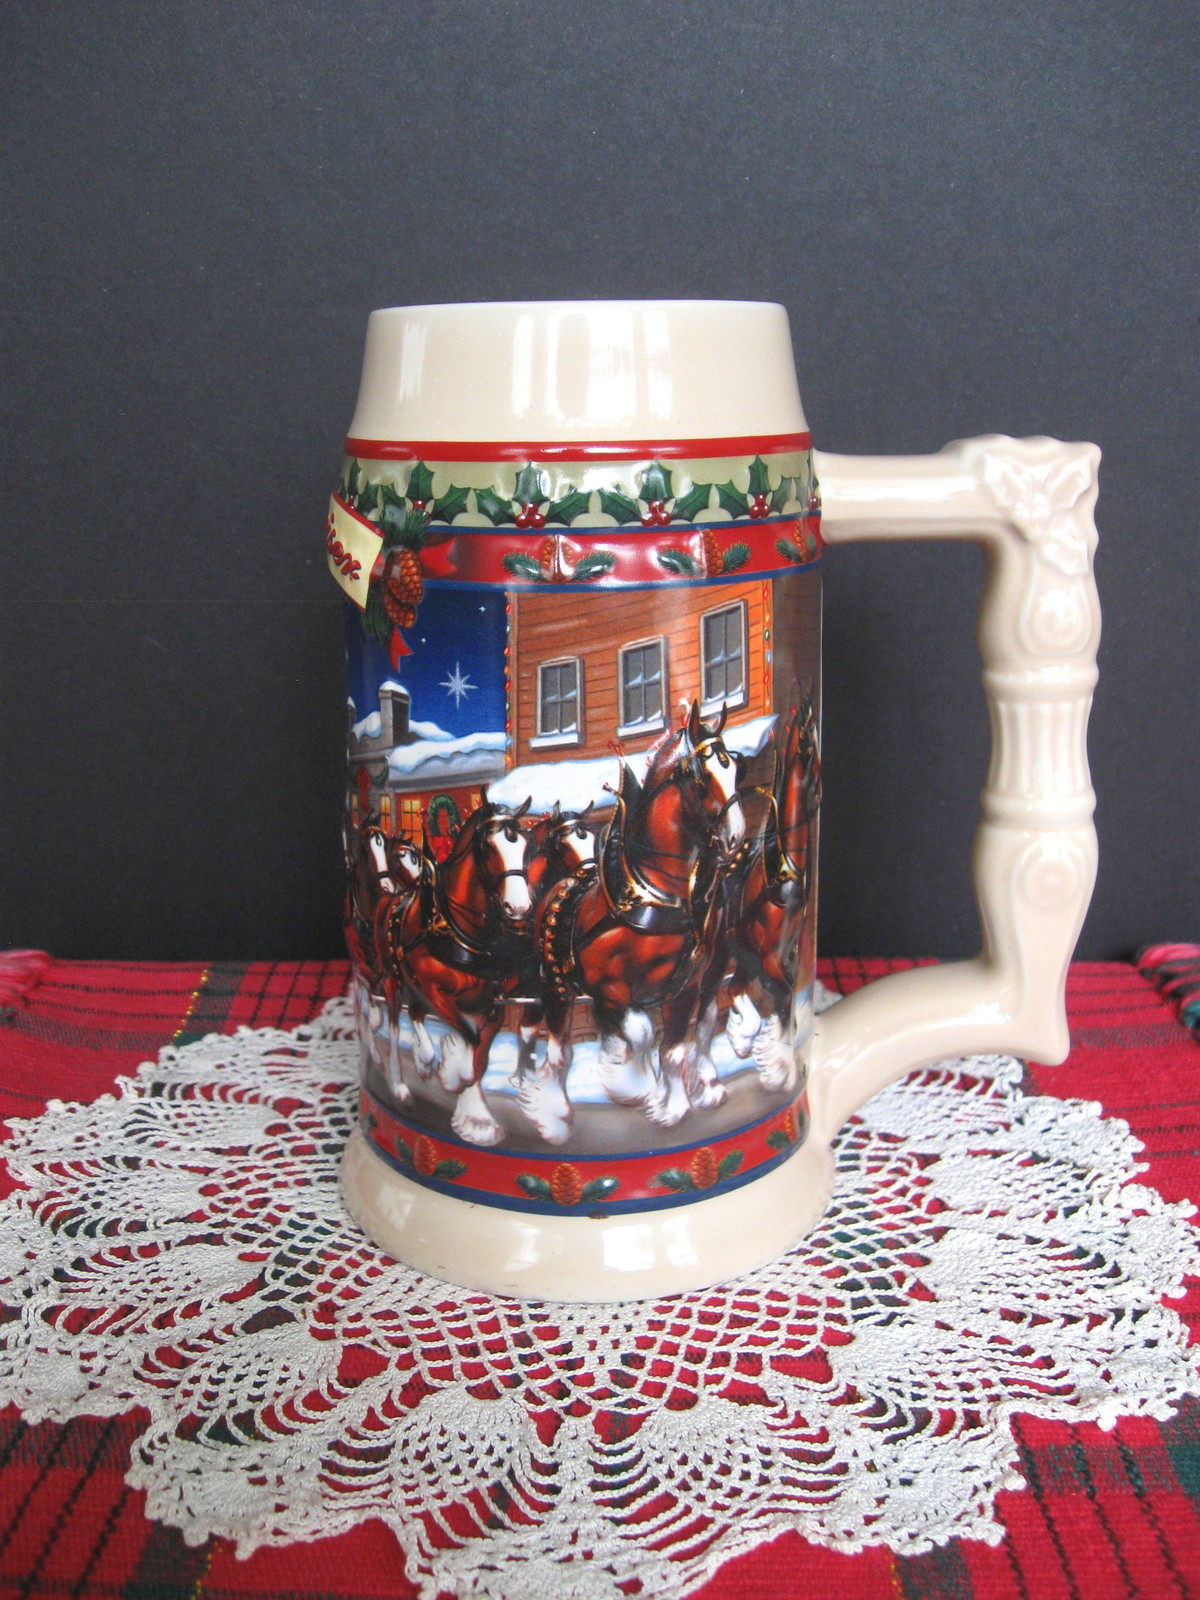 2003 Budweiser Holiday Stein - Old Towne Holiday - No. CS560 - No Box image 3